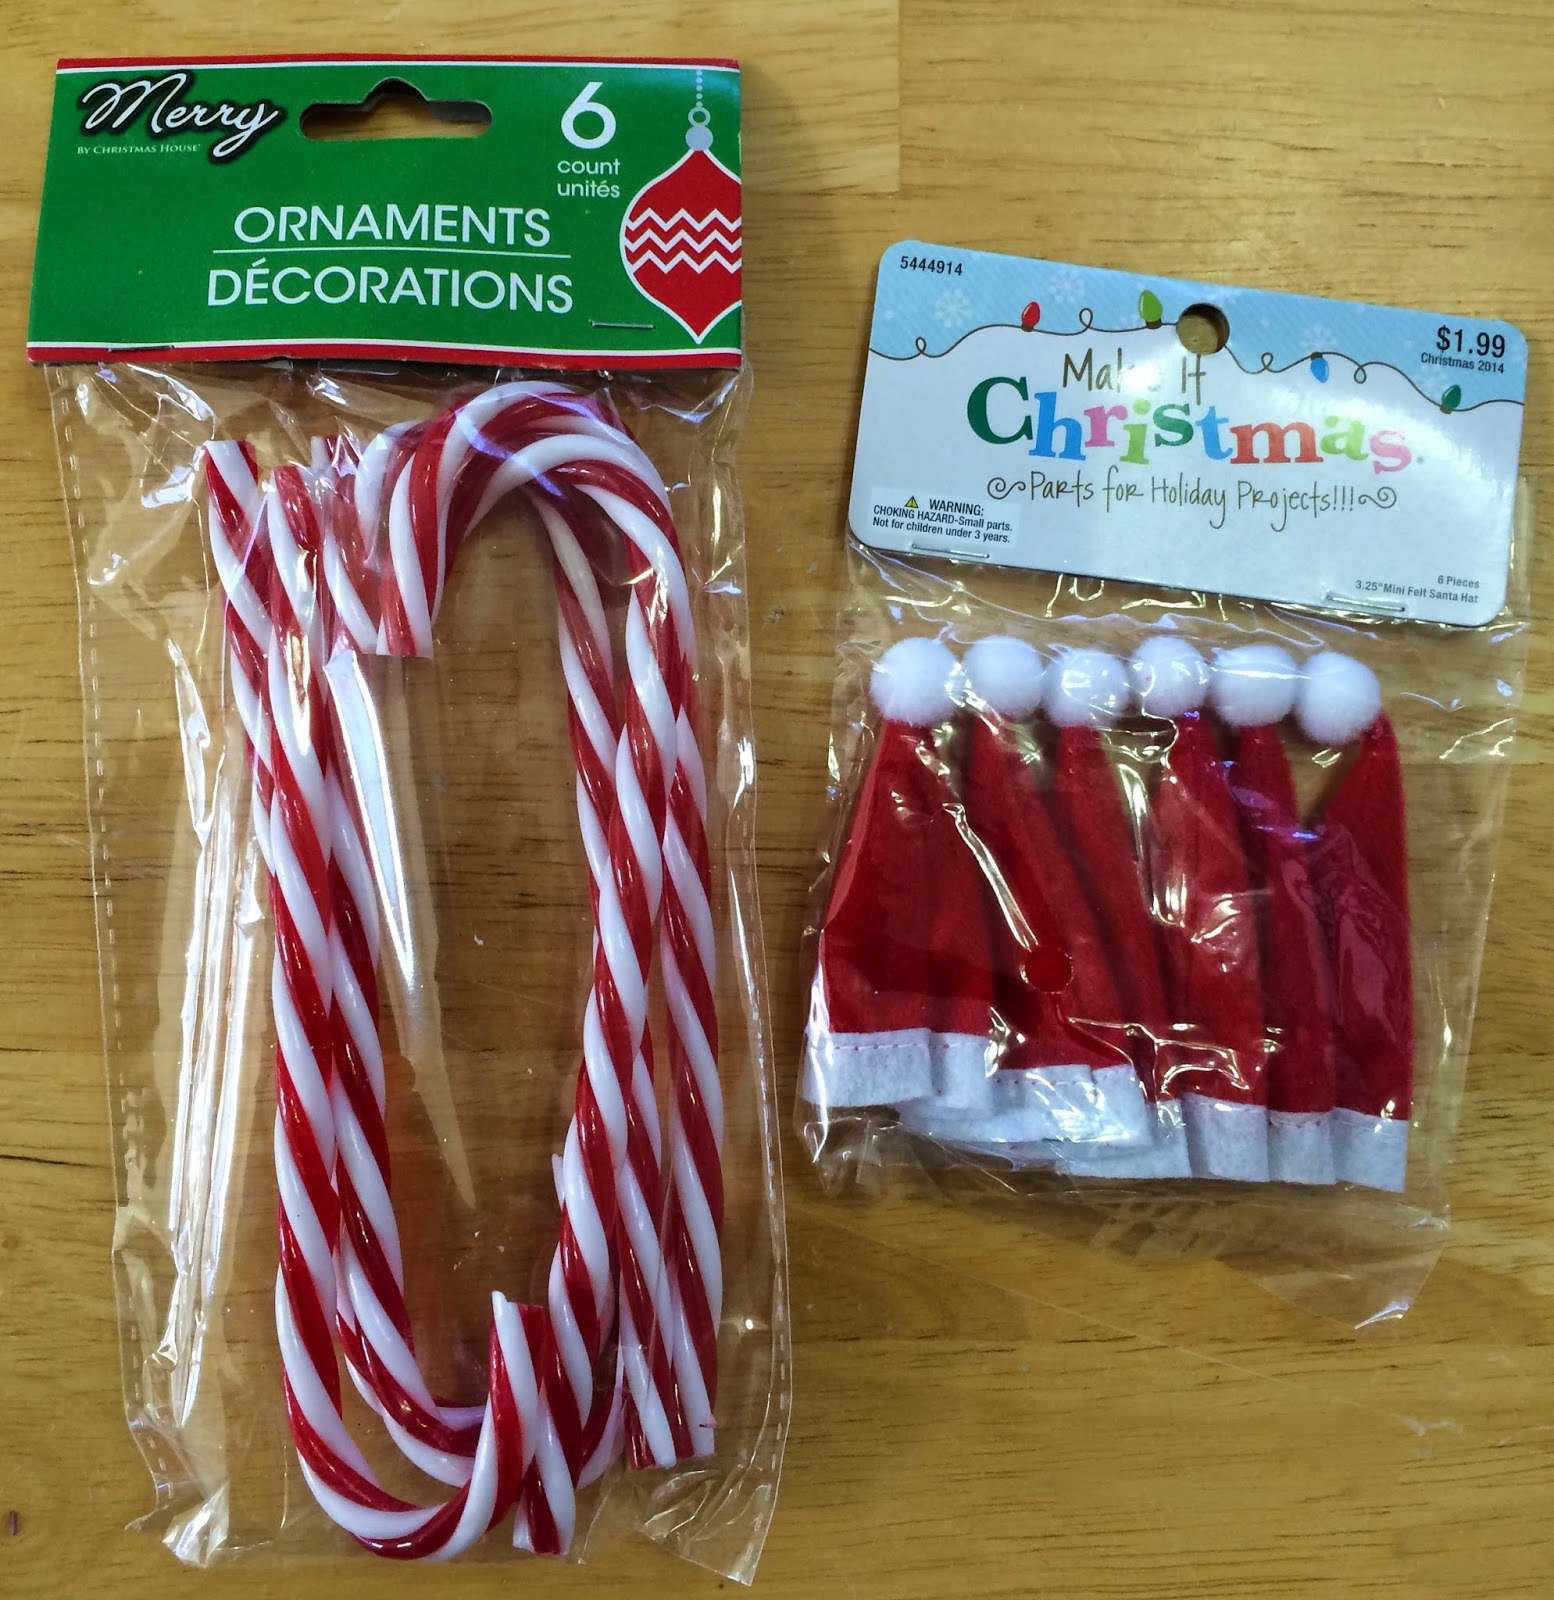 i found the candy canes at dollar tree and the hats at hobby lobby